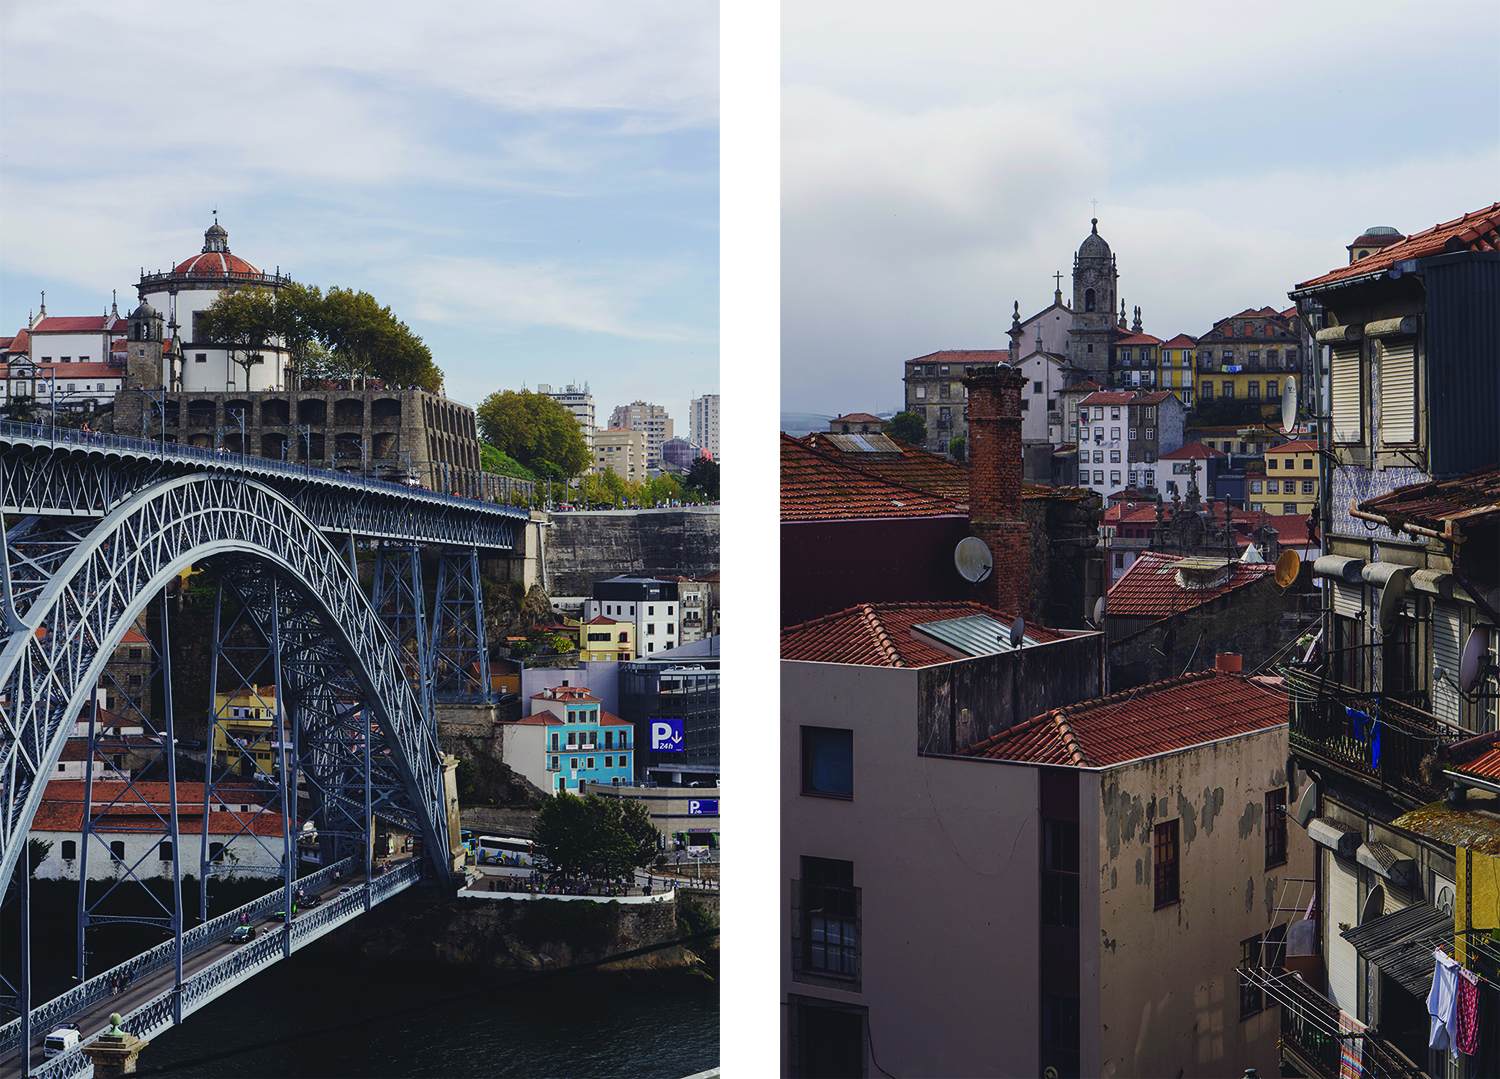 The Dom Luis Bridge and small streets of Ribeira in Porto